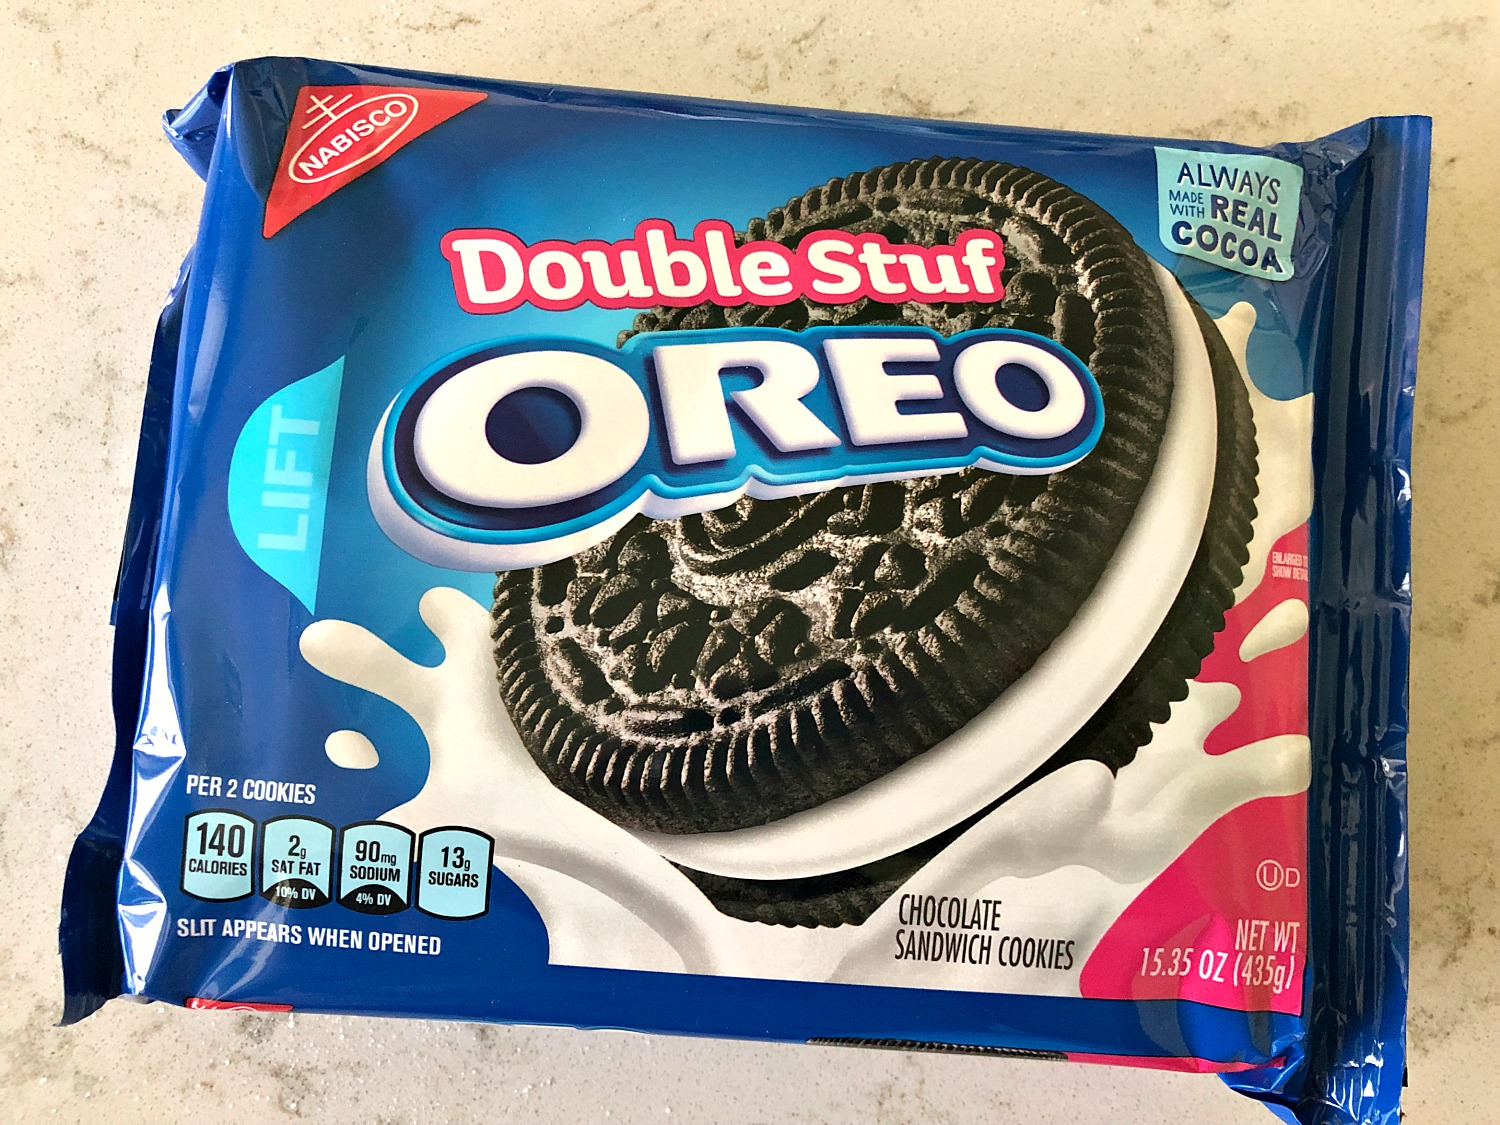 Package of Double Stuff Oreo Cookies